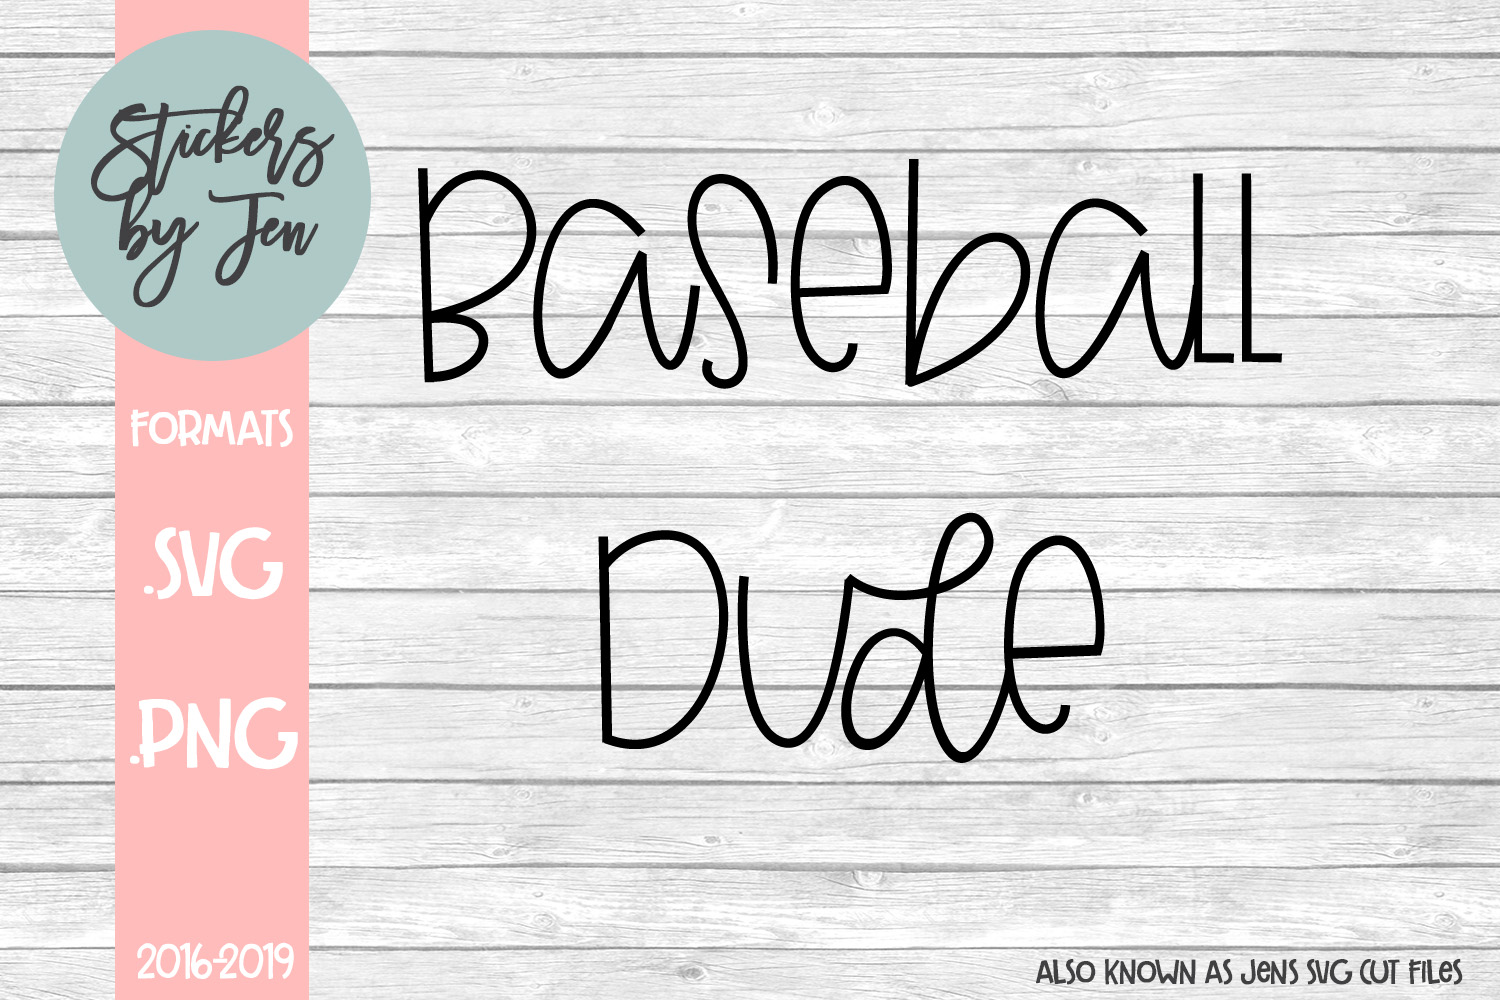 Download Free Baseball Dude Graphic By Stickers By Jennifer Creative Fabrica for Cricut Explore, Silhouette and other cutting machines.